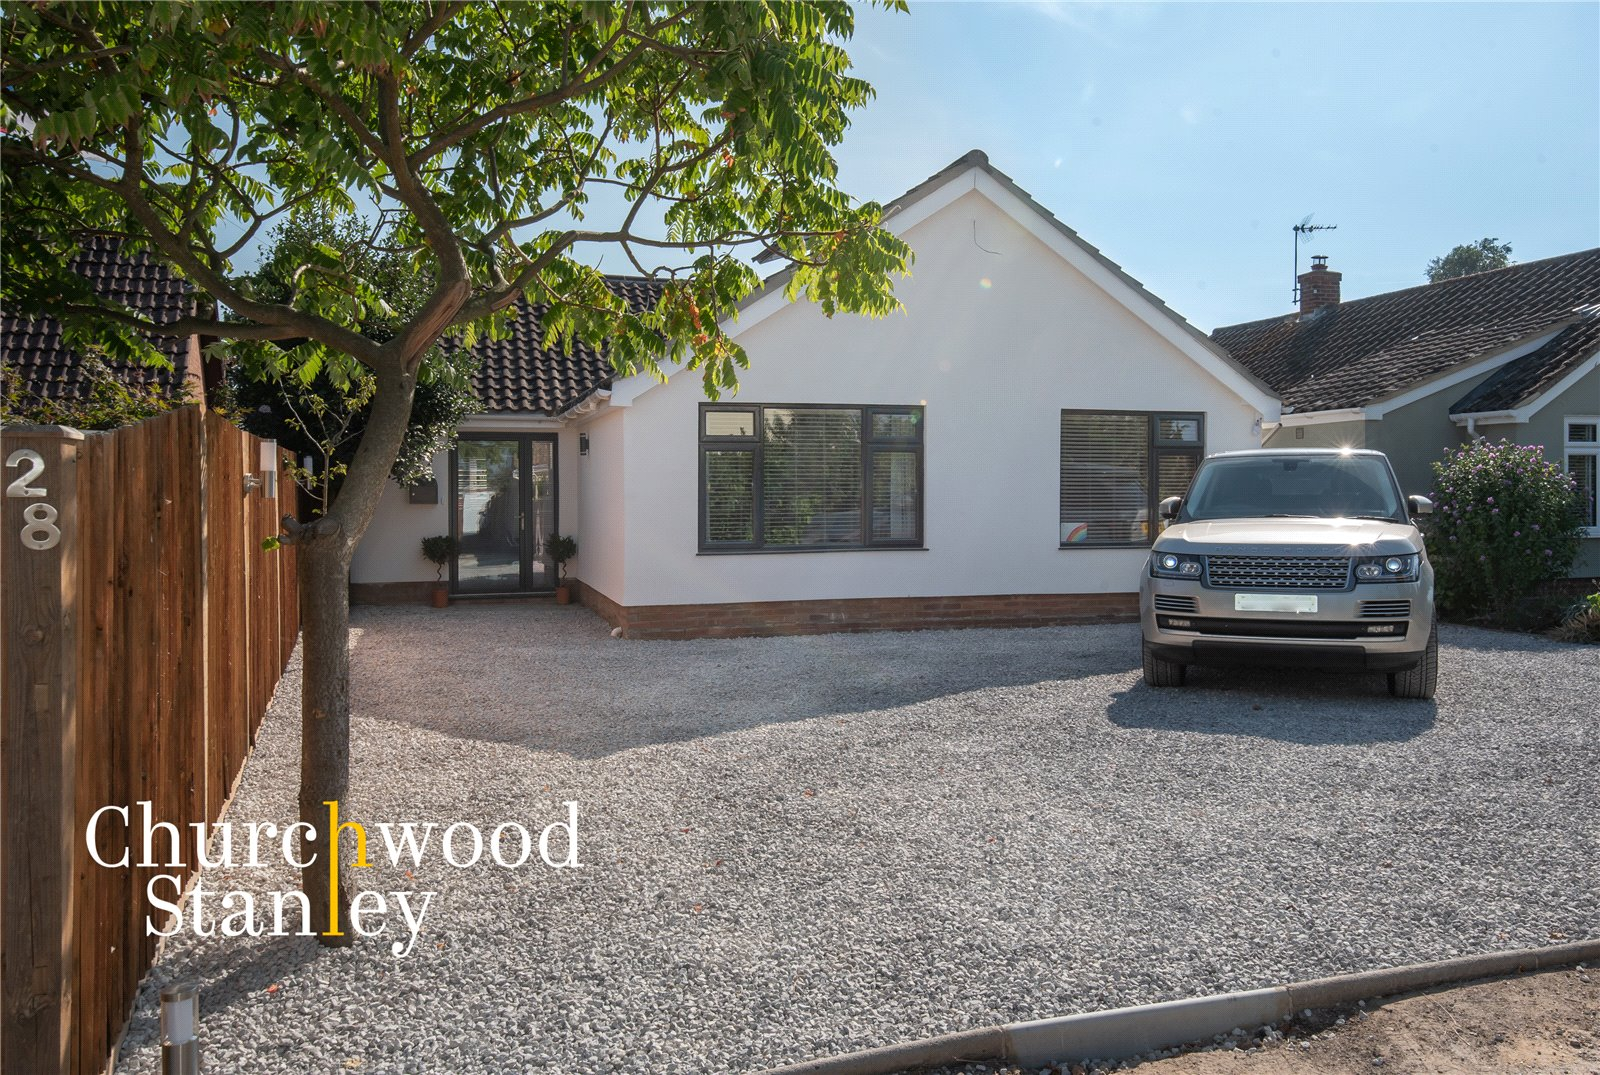 4 bed bungalow for sale in Cattsfield, Stutton, Ipswich, IP9